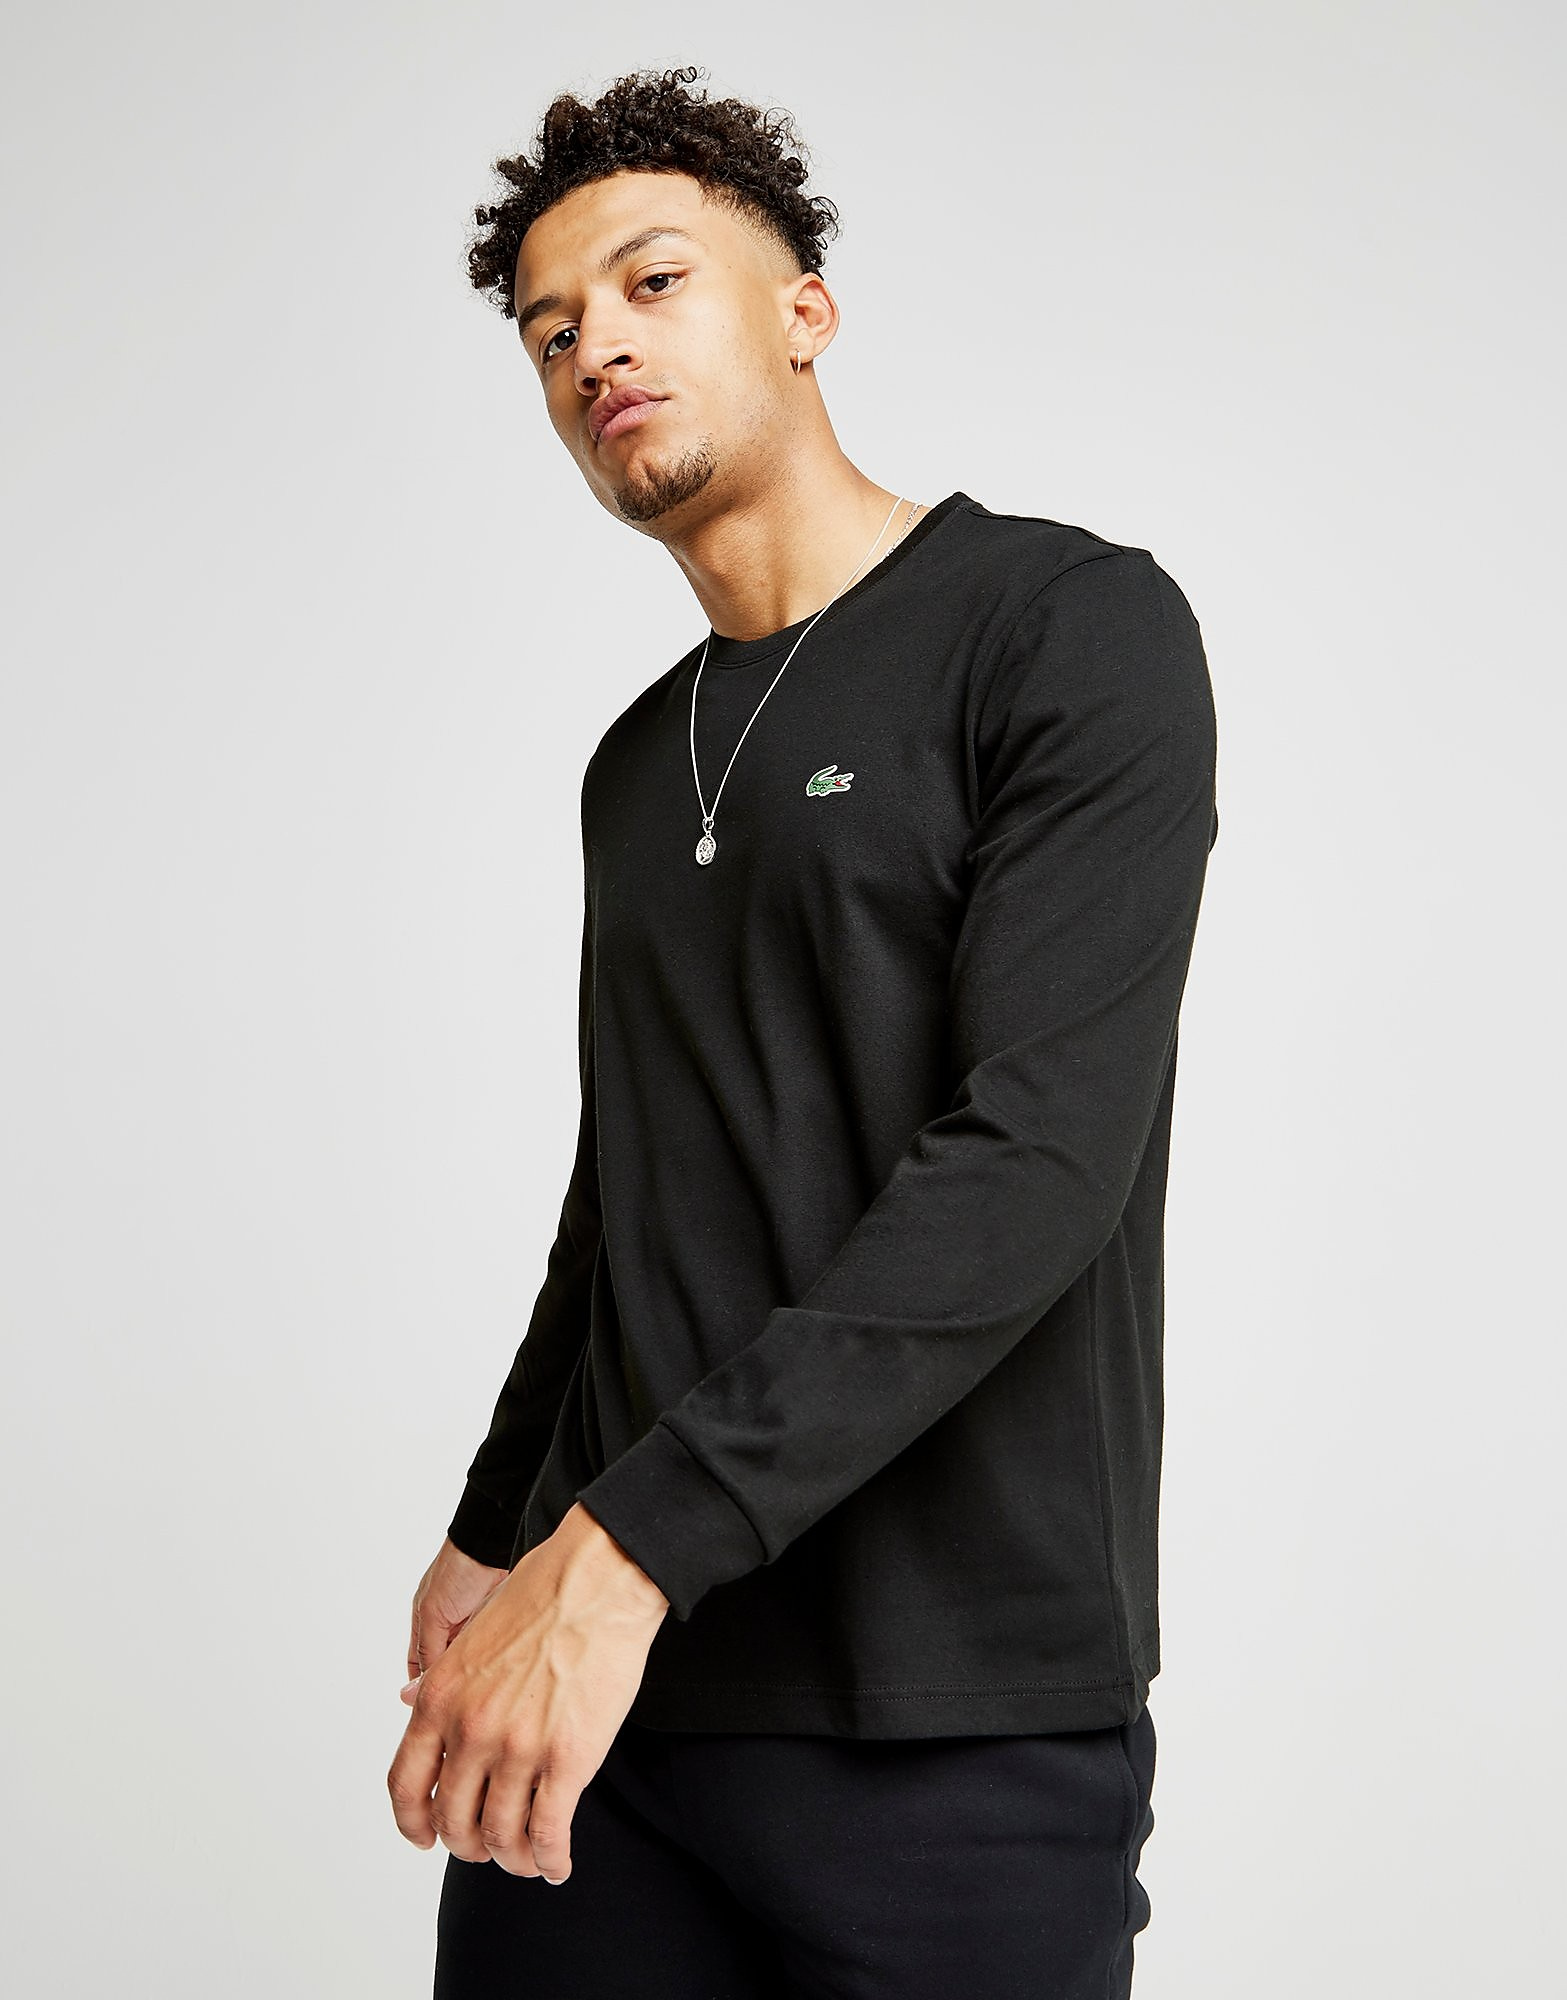 Lacoste Croc Long-Sleeved T-Shirt